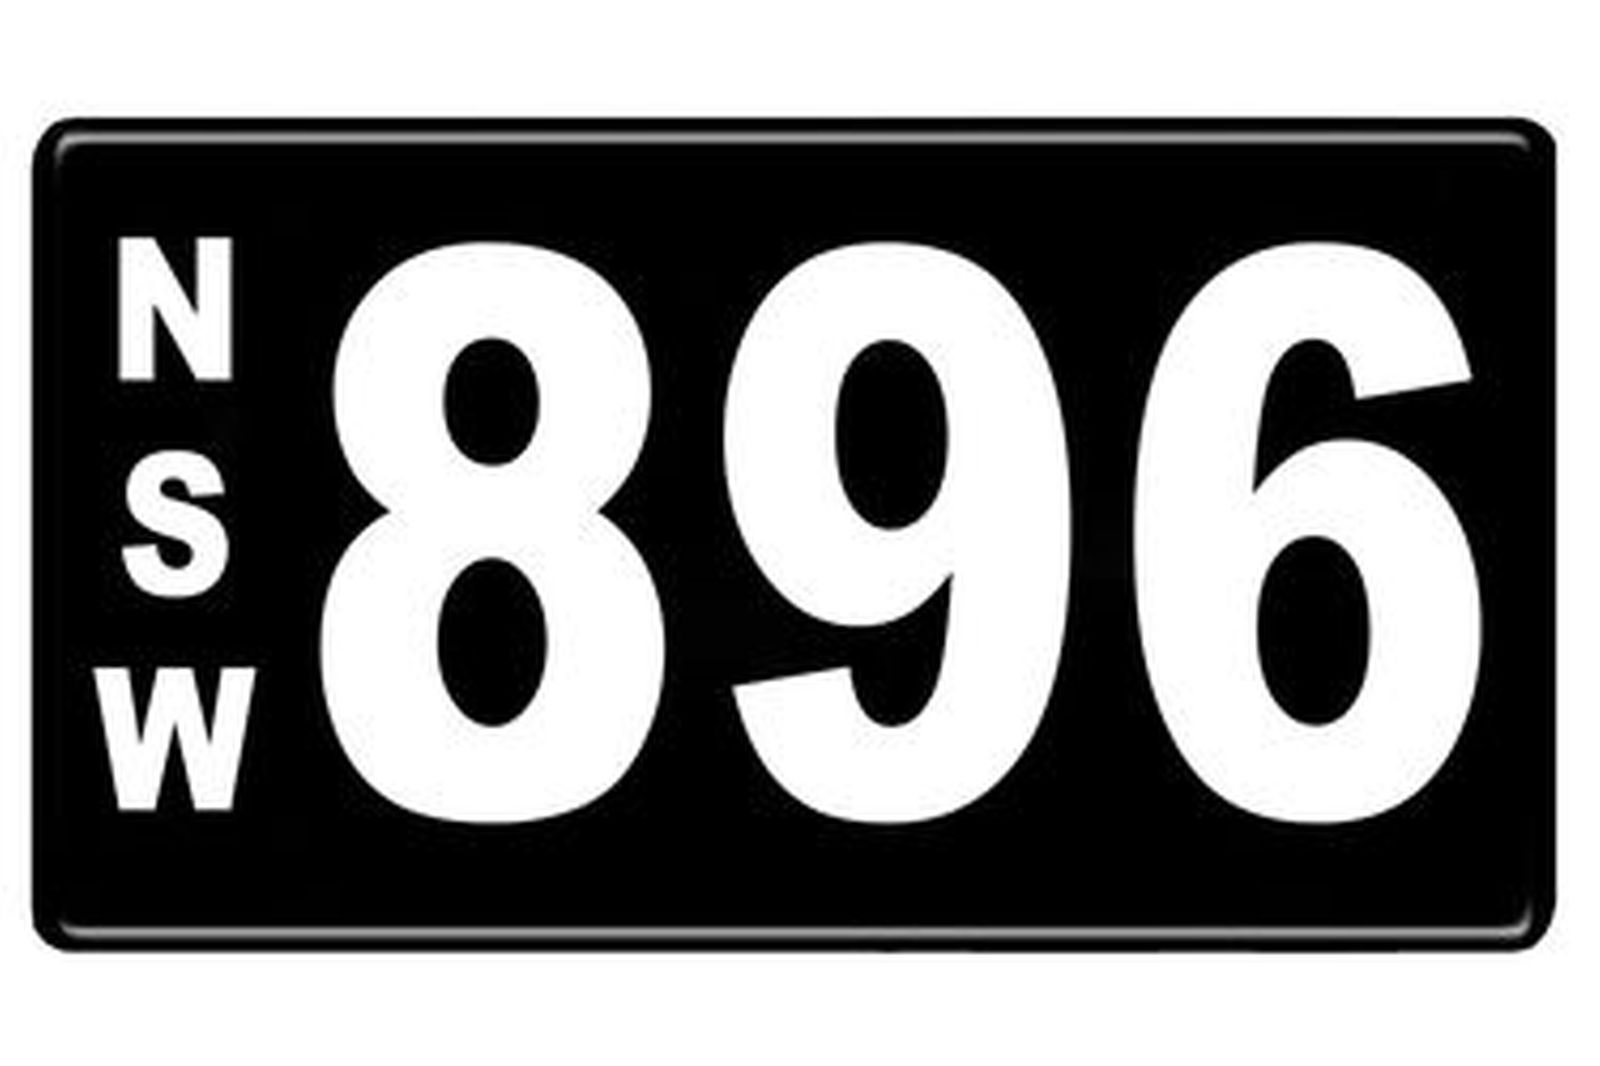 Number Plates - NSW Numerical Number Plates '896'